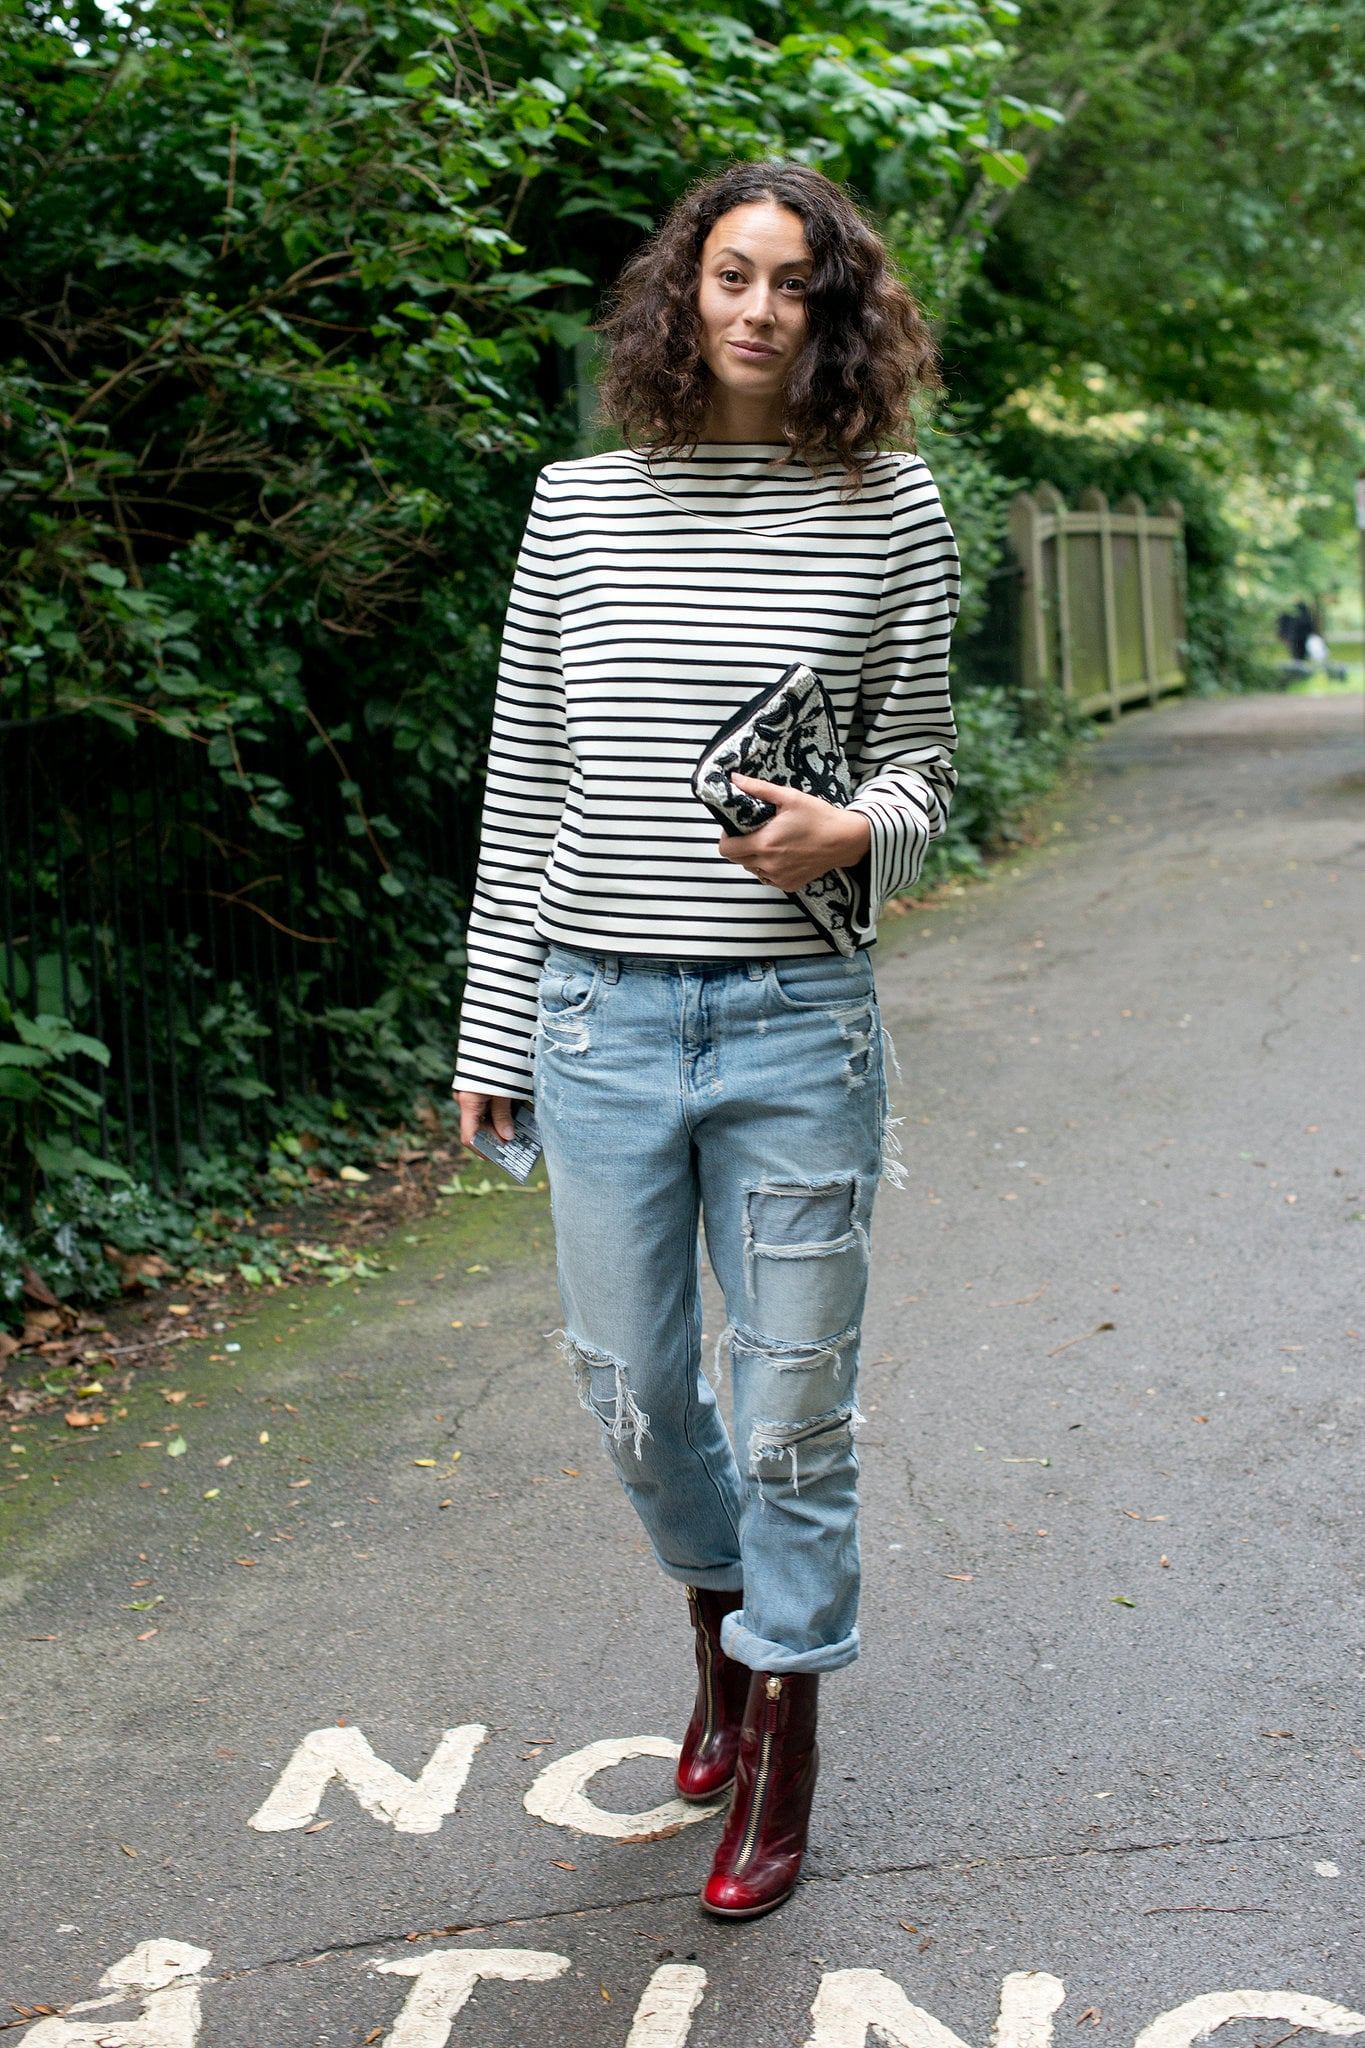 With Stripes